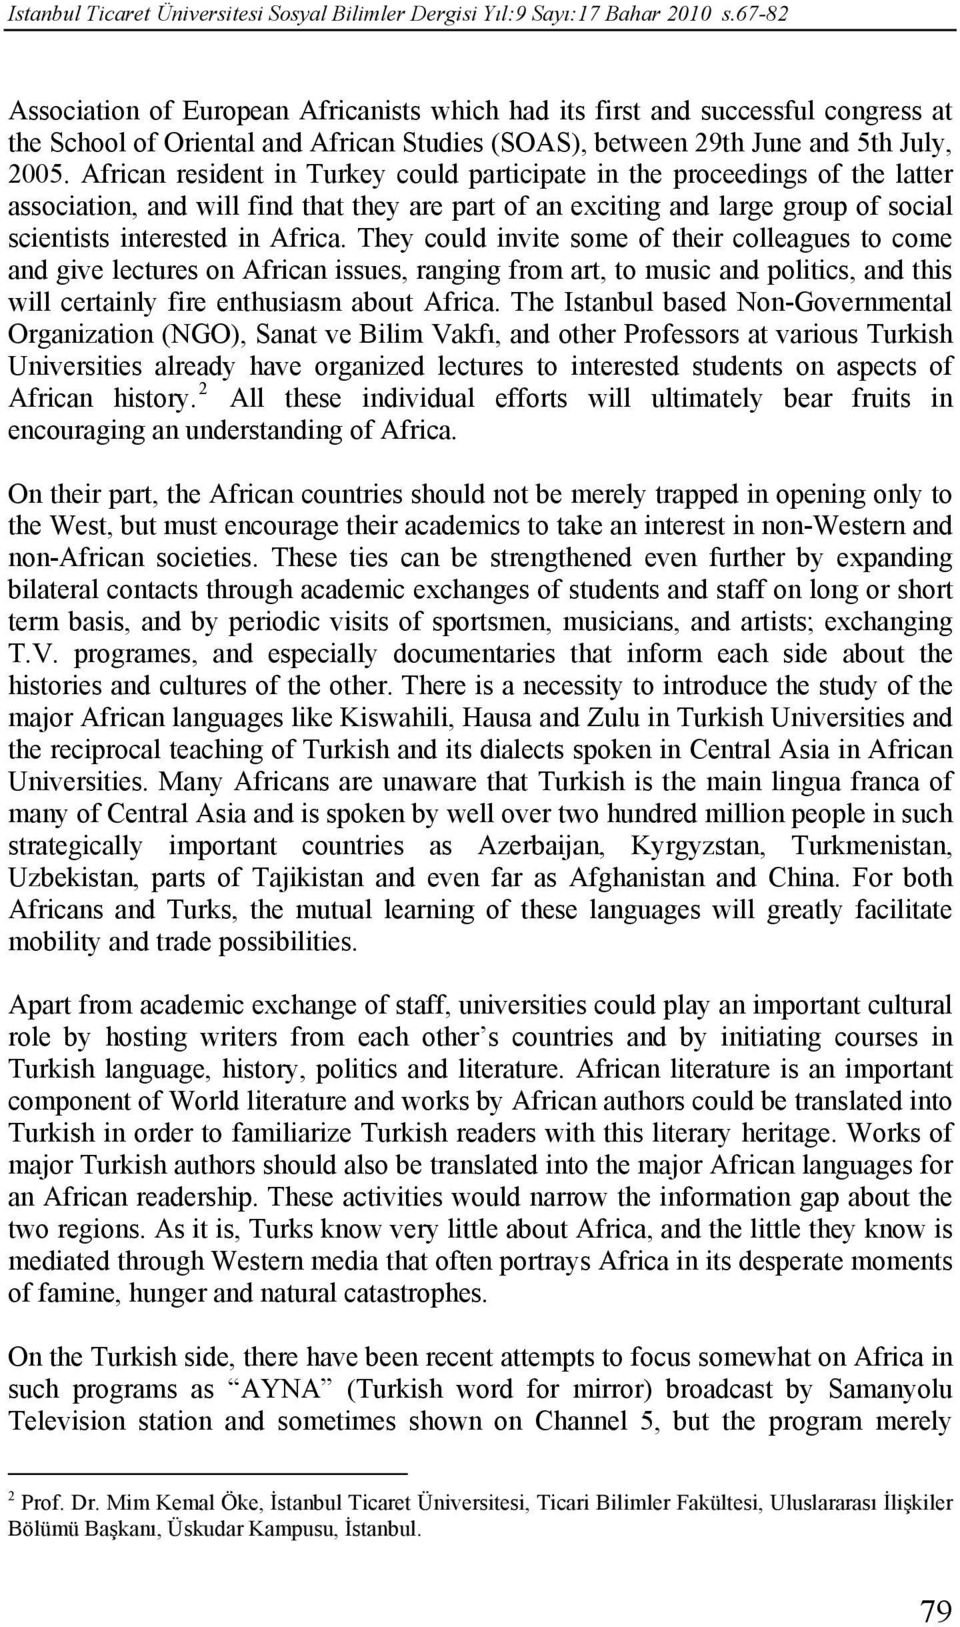 African resident in Turkey could participate in the proceedings of the latter association, and will find that they are part of an exciting and large group of social scientists interested in Africa.